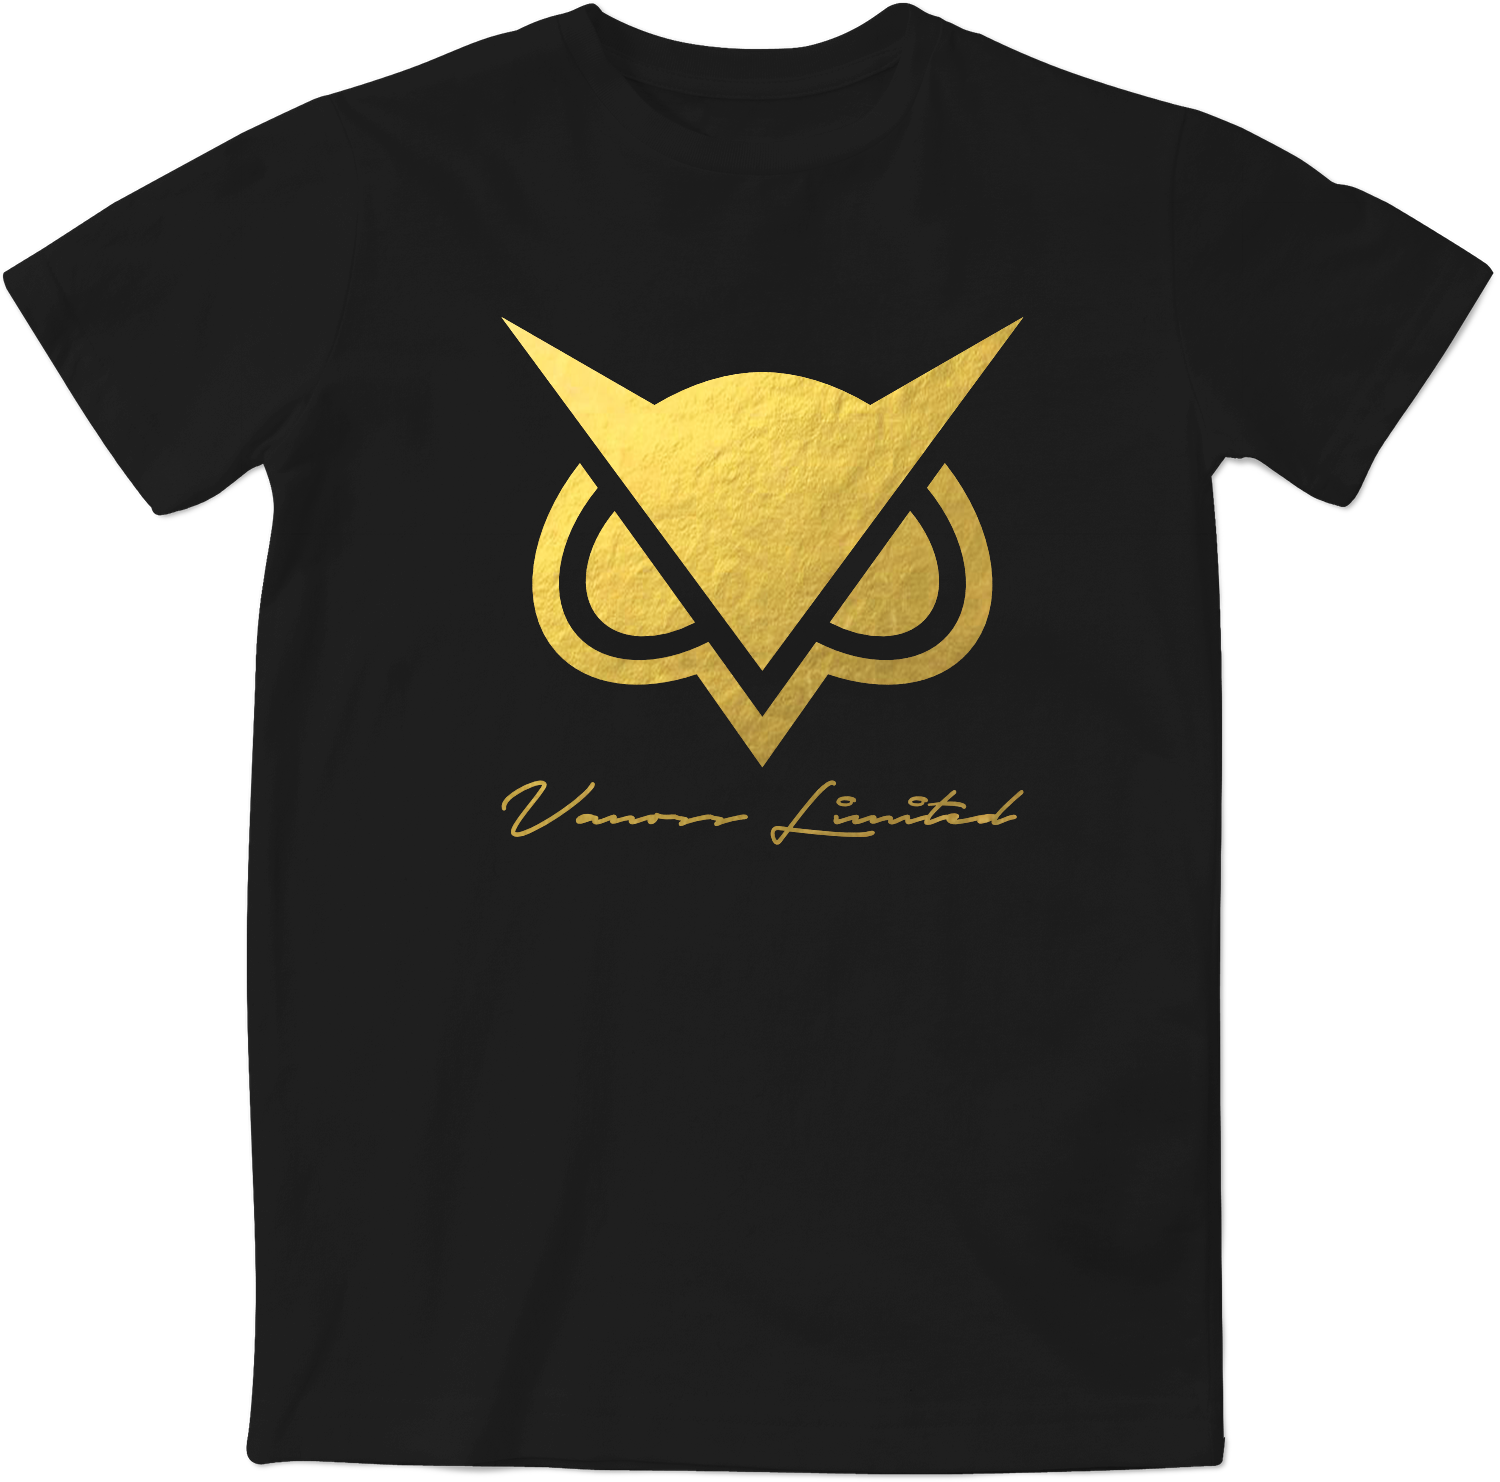 Limited Edition - Vanoss || Gold Foil Logo T-Shirt | Kids ...